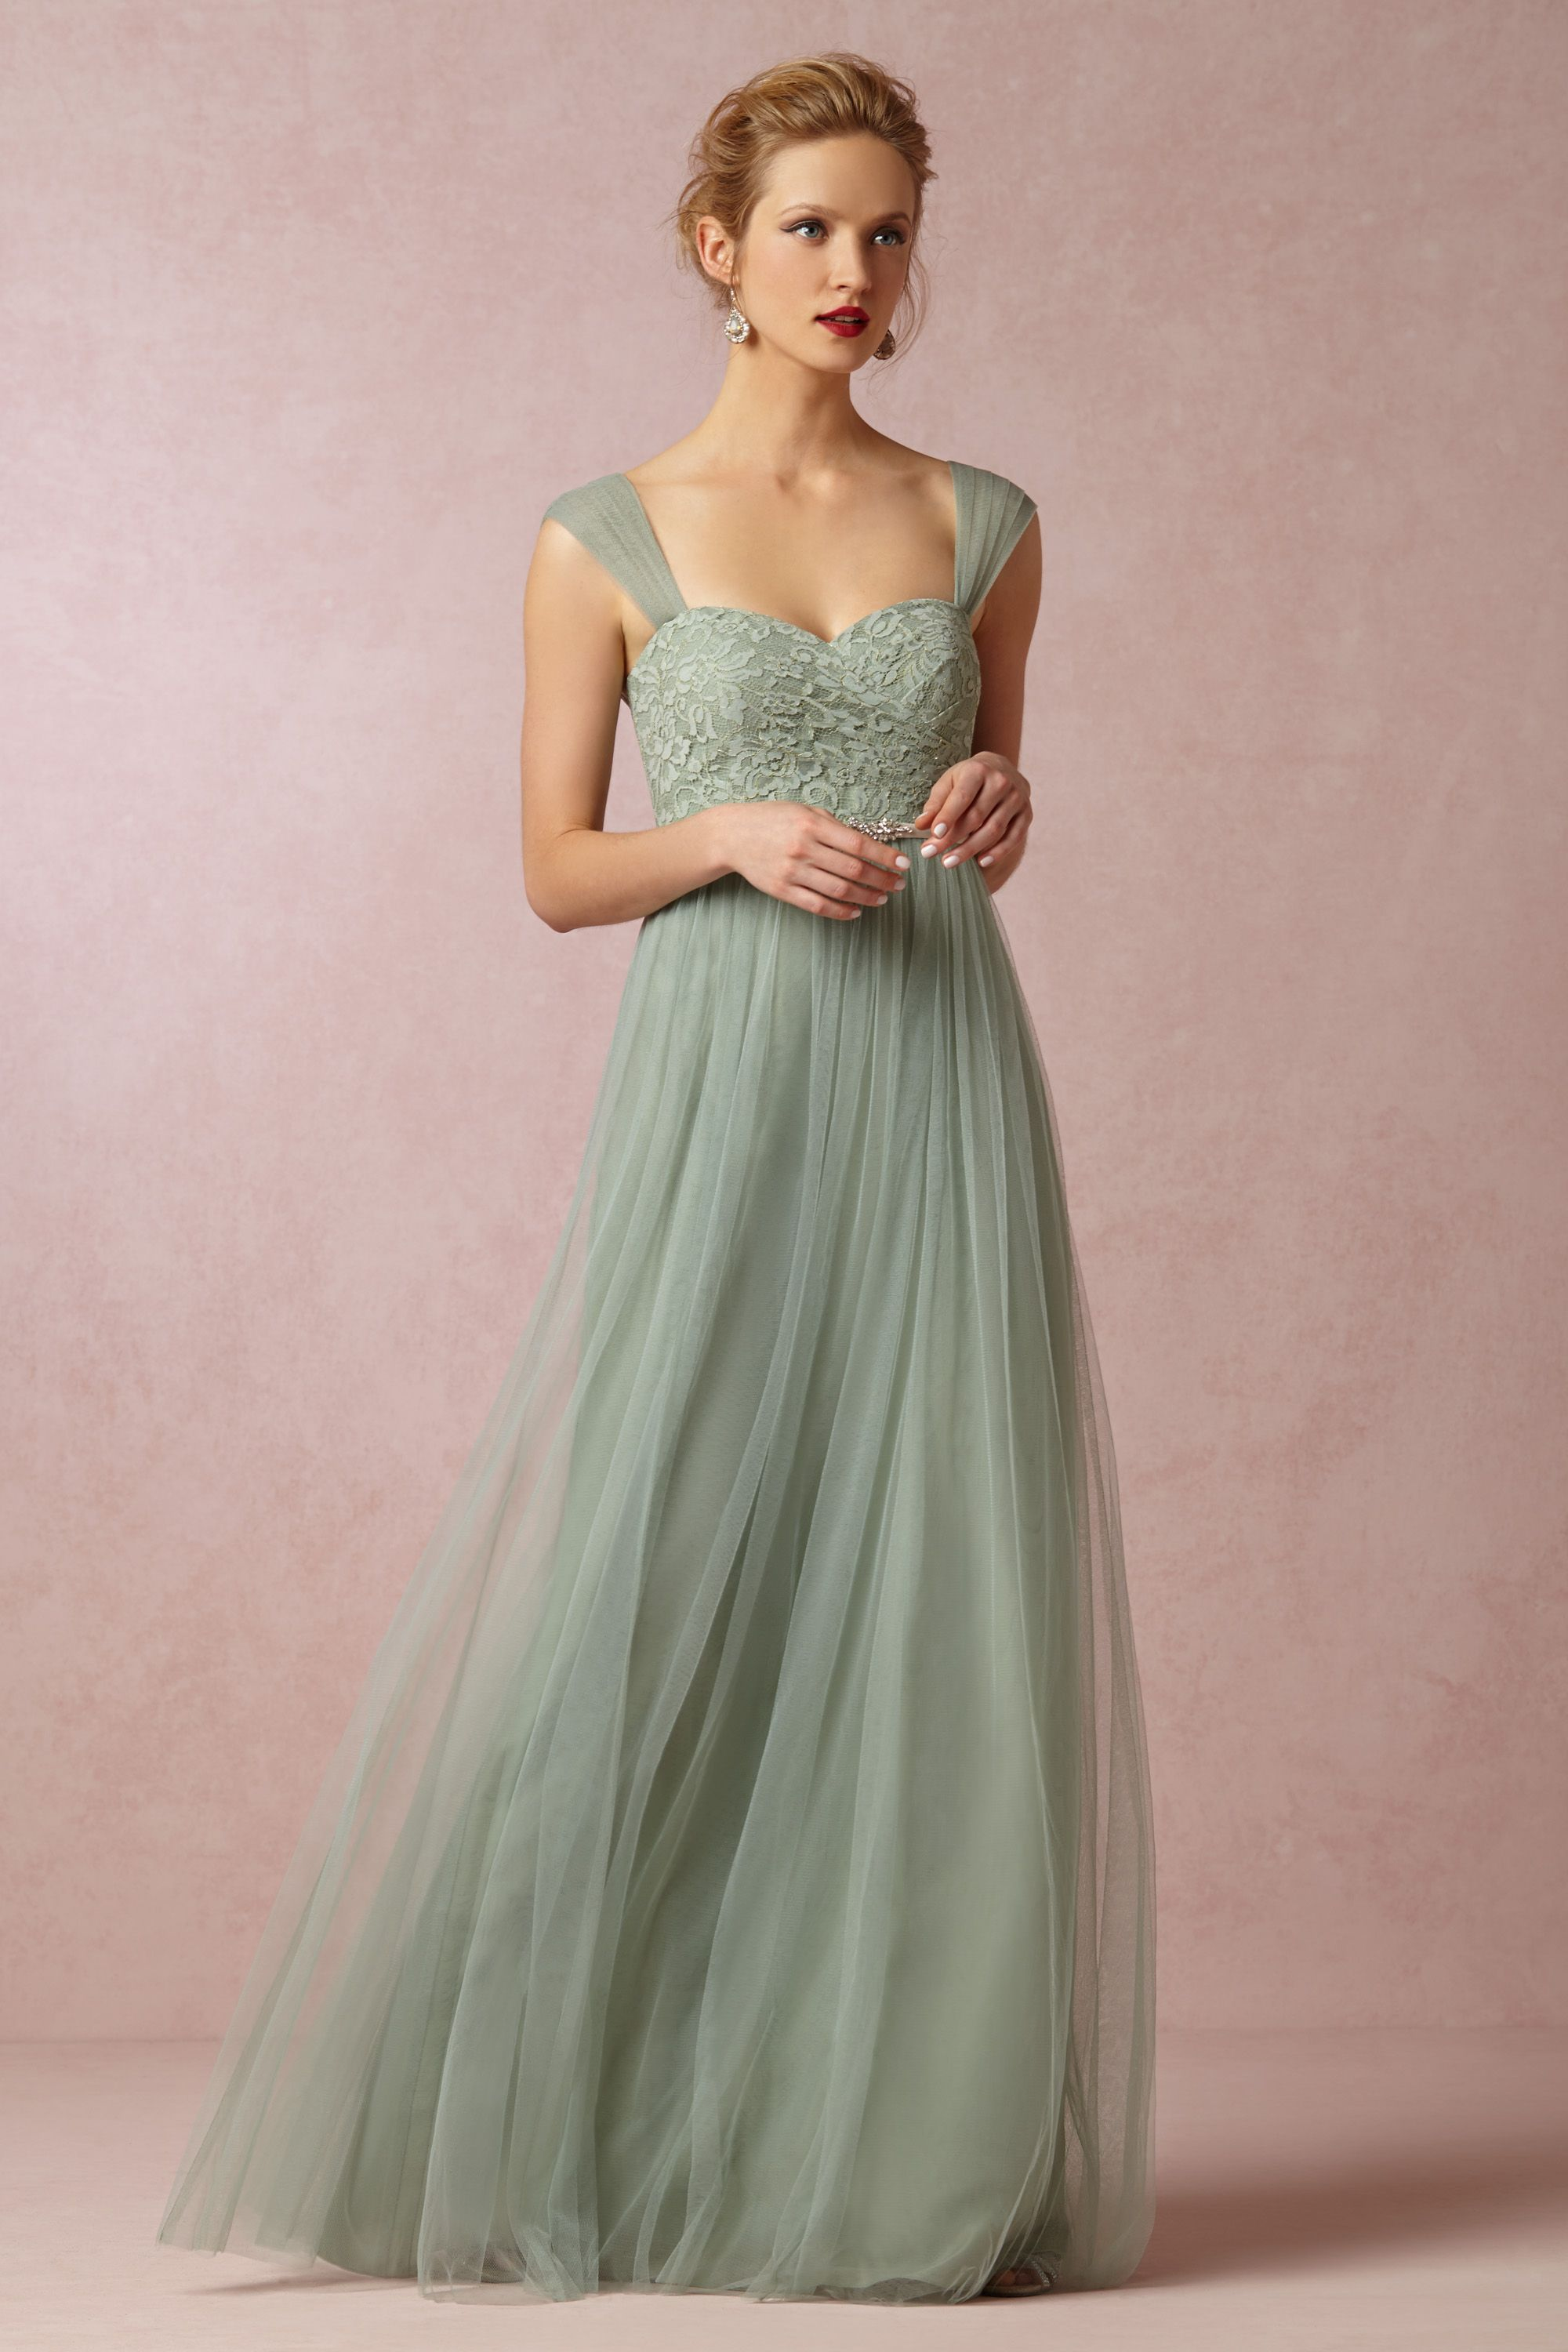 Juliette dress in bridesmaids bridesmaid dresses at bhldn ucuc my